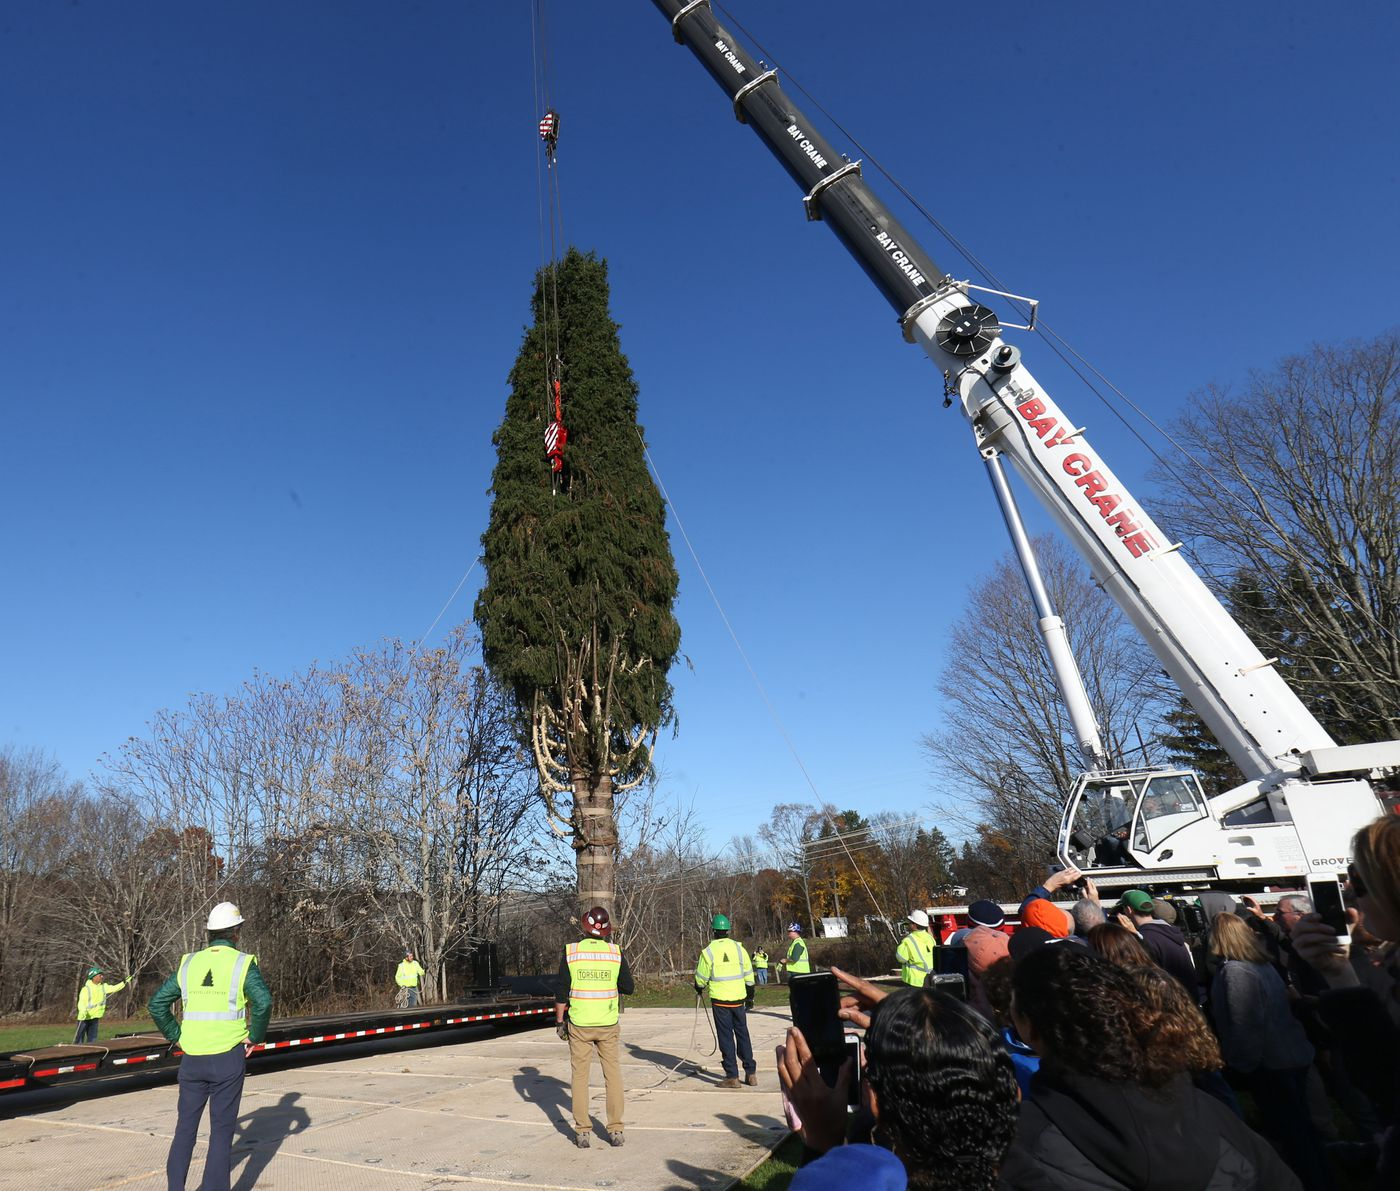 Christmas Tree Shop Poughkeepsie Ny: Rockefeller Christmas Tree Cut Down At Upstate NY Home